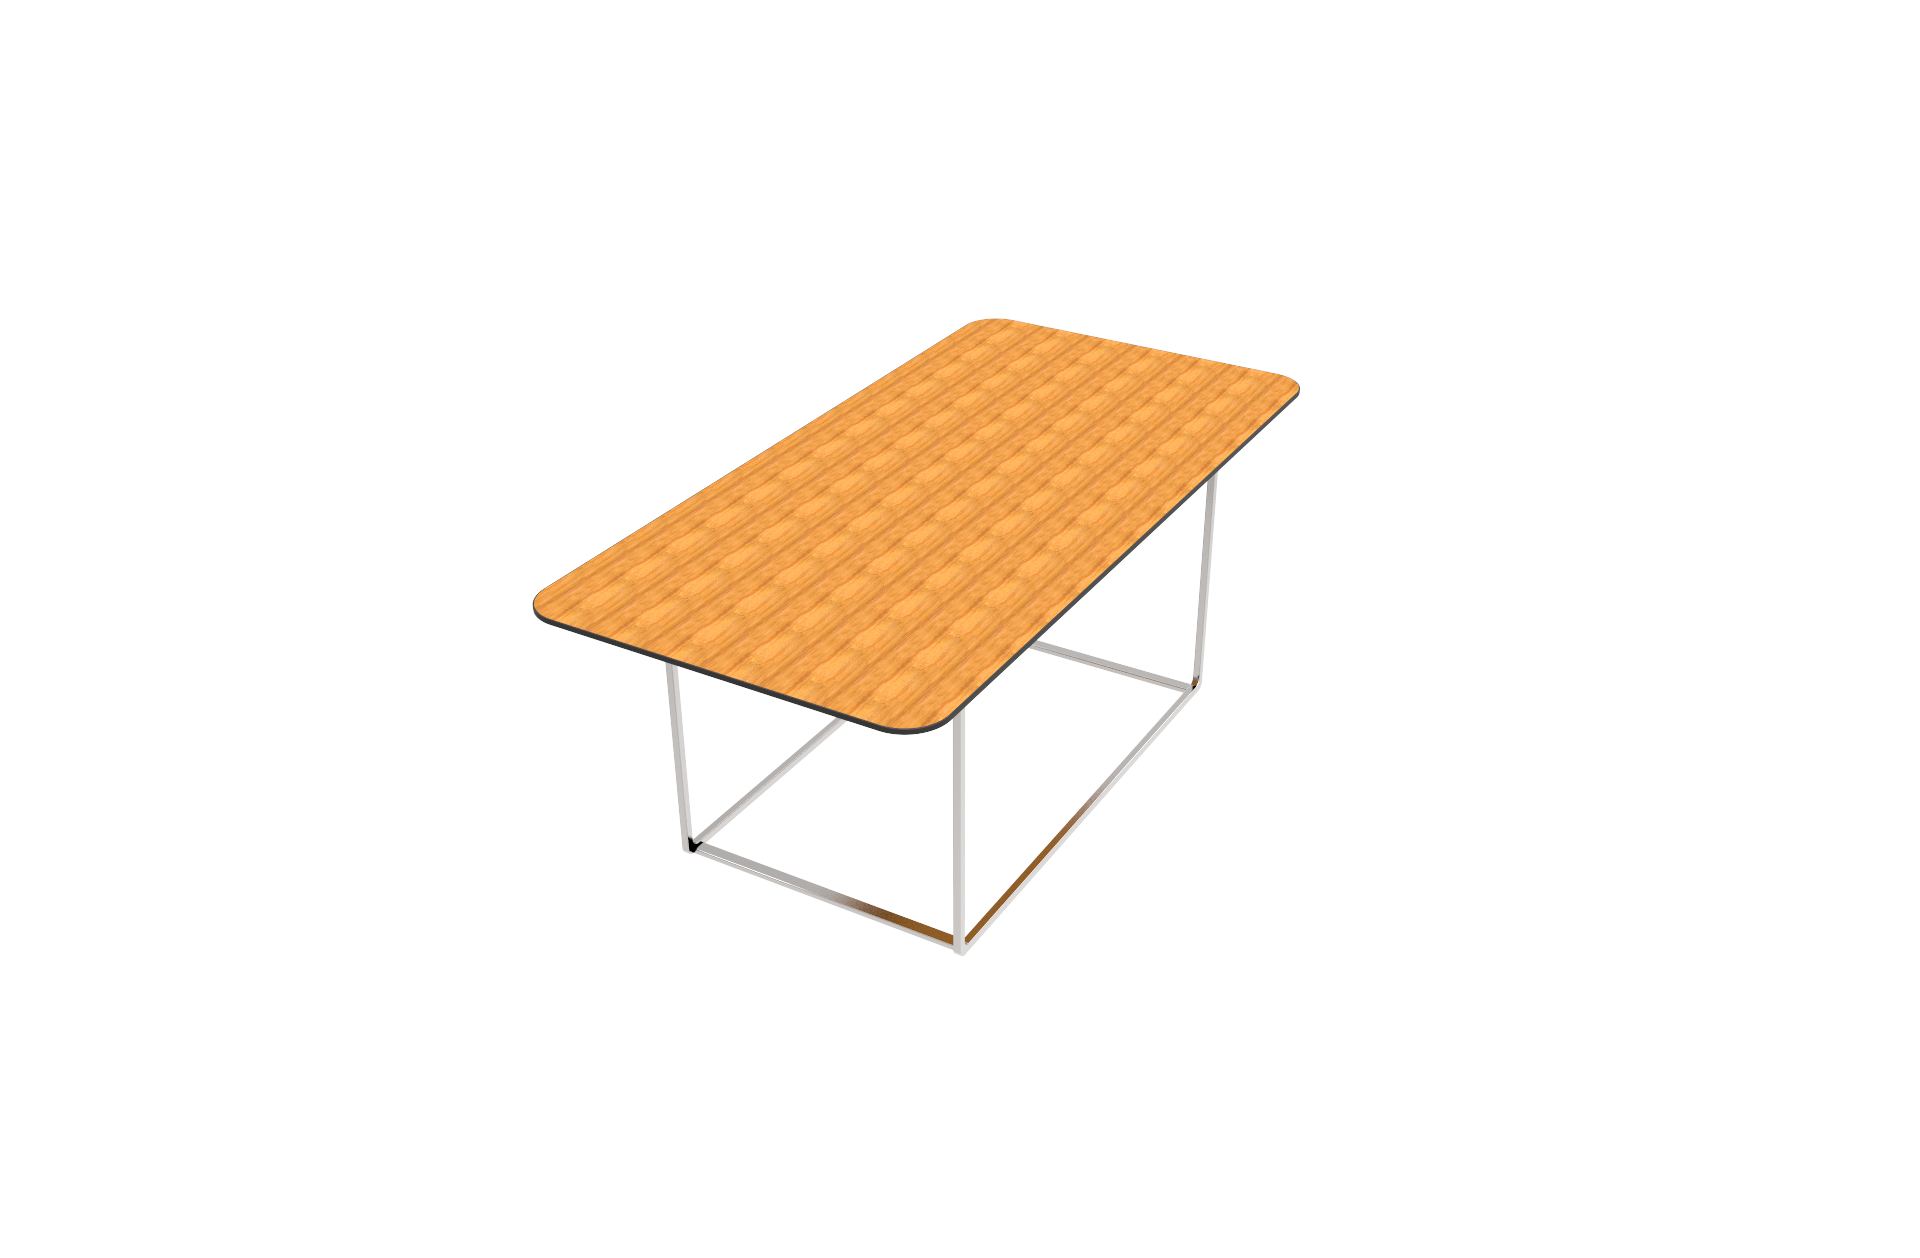 What about compact table top